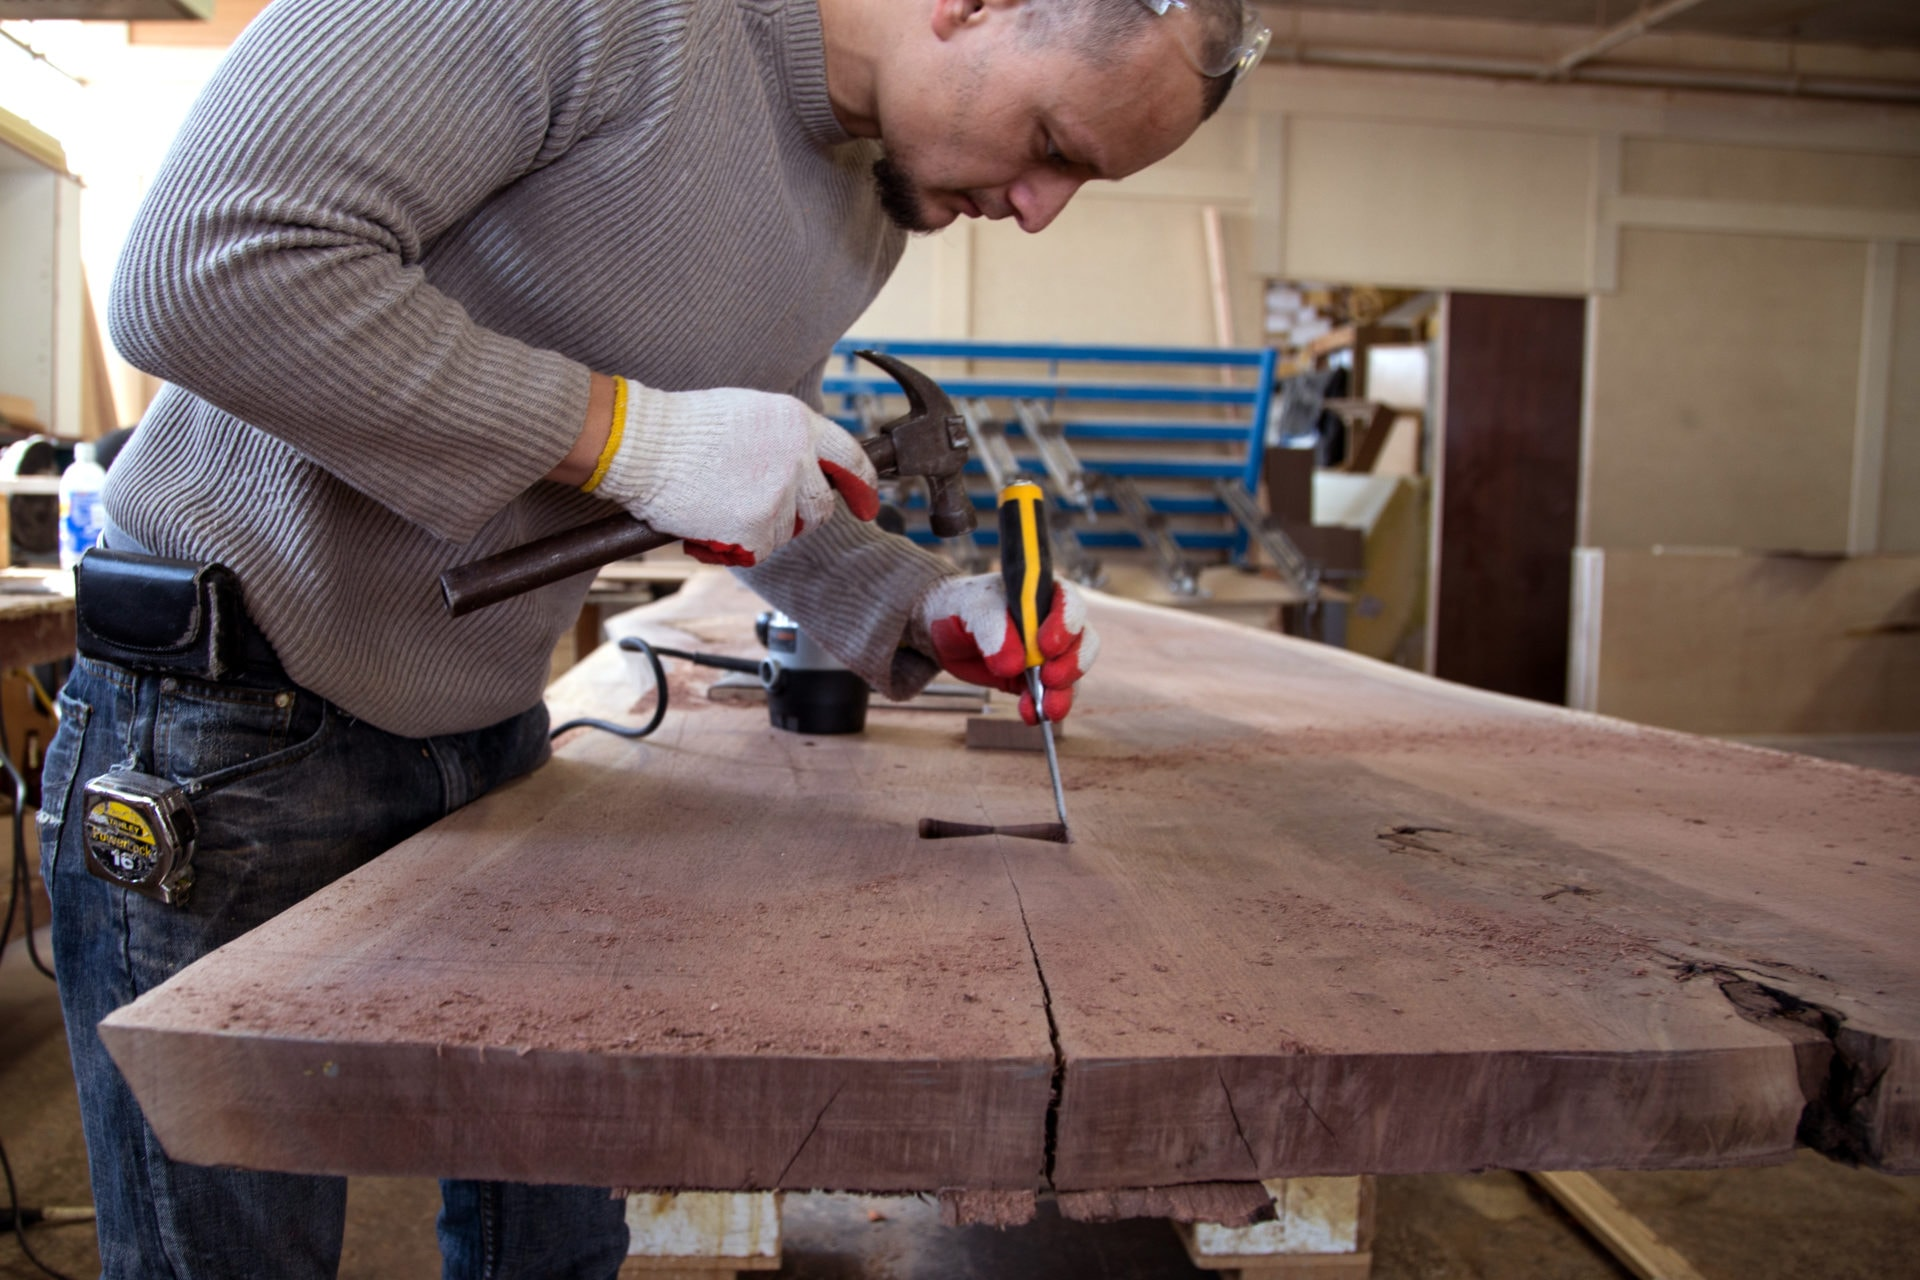 A person using tools to cut out a space for a butterfly joint into a solid luxury American black walnut wood live edge slab